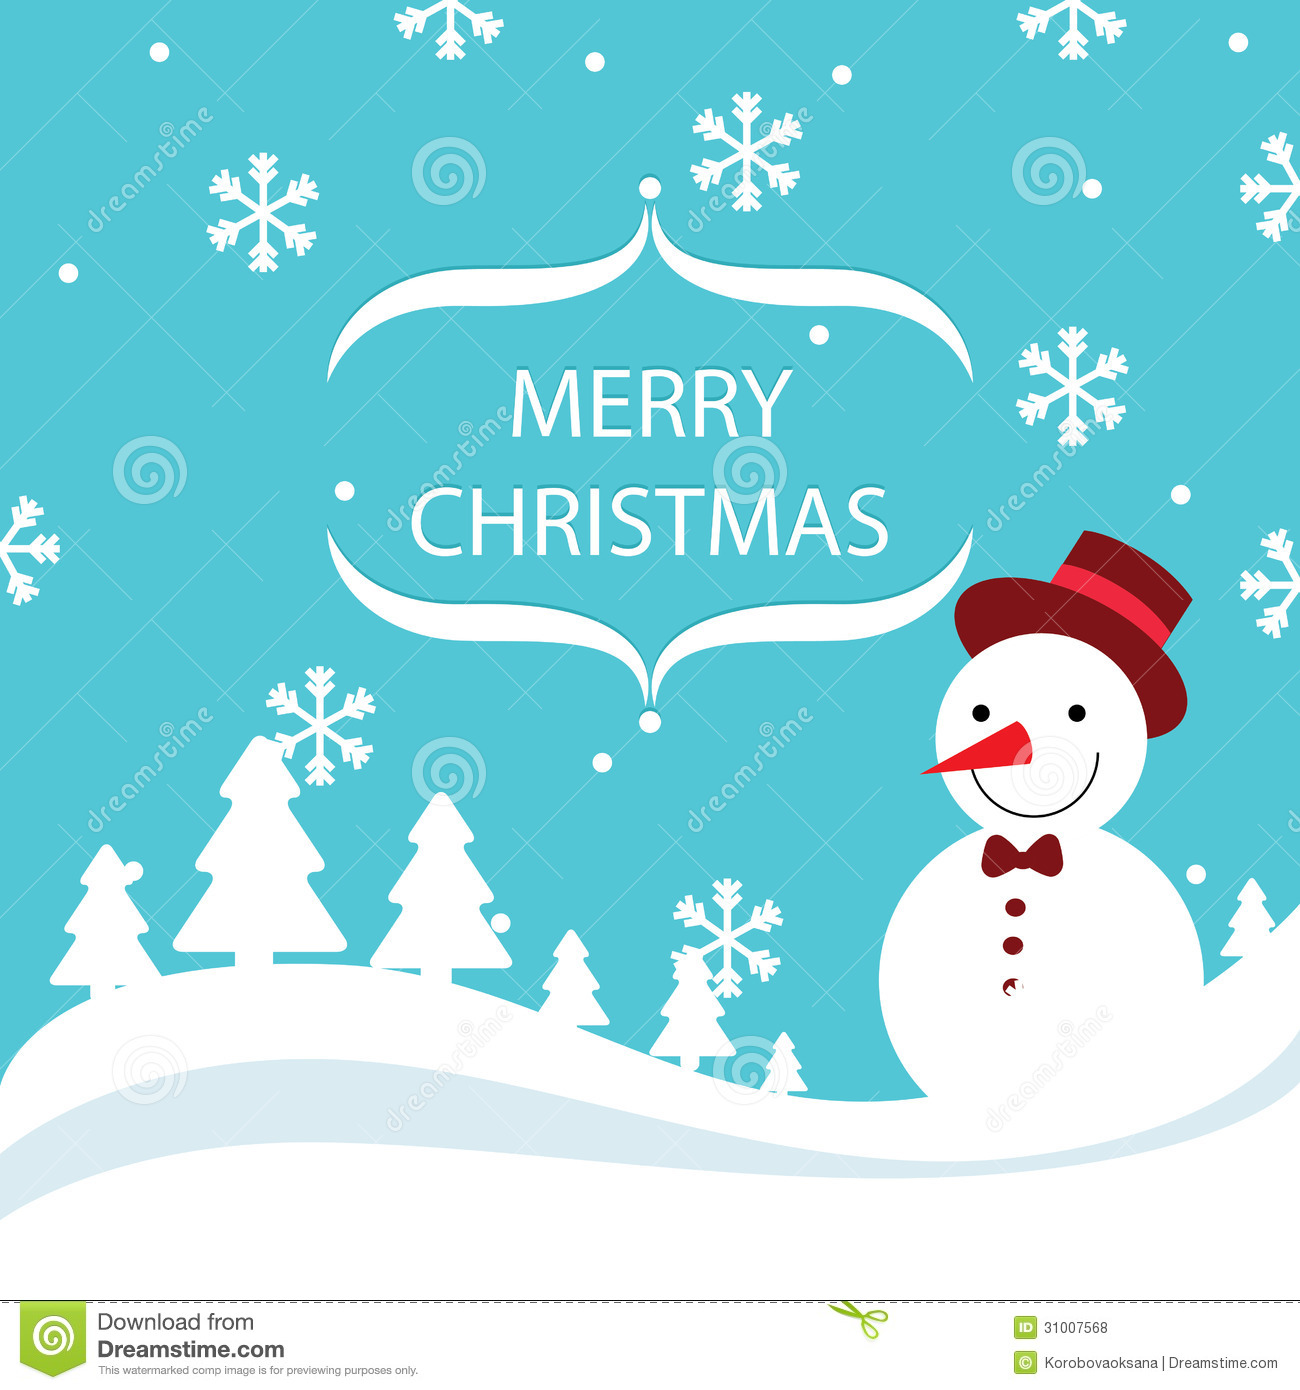 Vector Merry Christmas Card. December, Illustration.